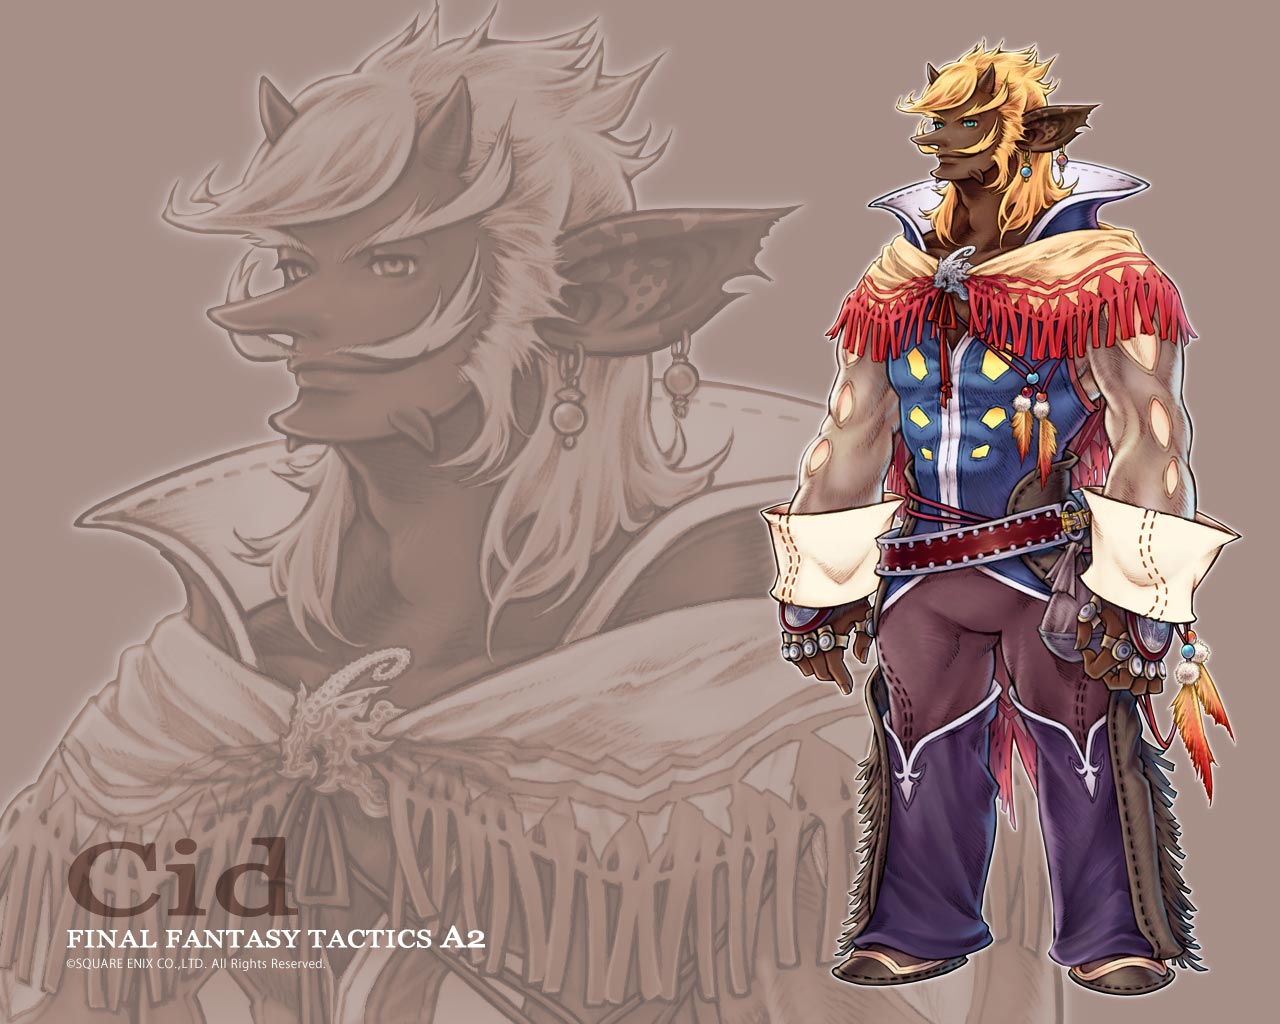 all_male blonde_hair cid feathers final_fantasy final_fantasy_tactics_a2 gray_eyes horns male short_hair watermark zoom_layer